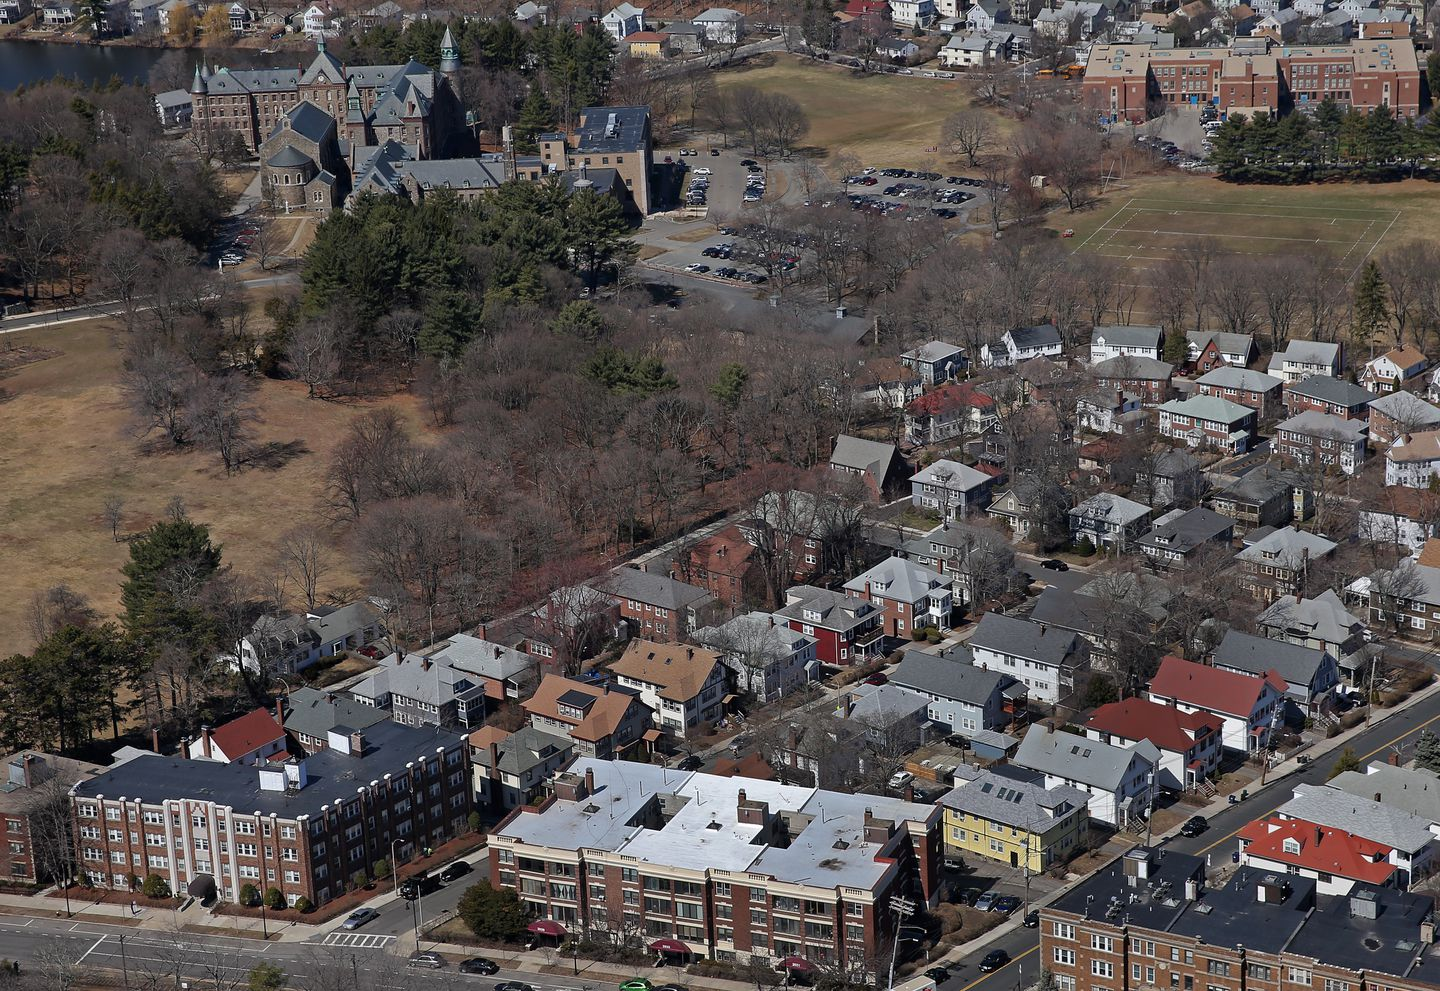 St John's Seminary (top left).